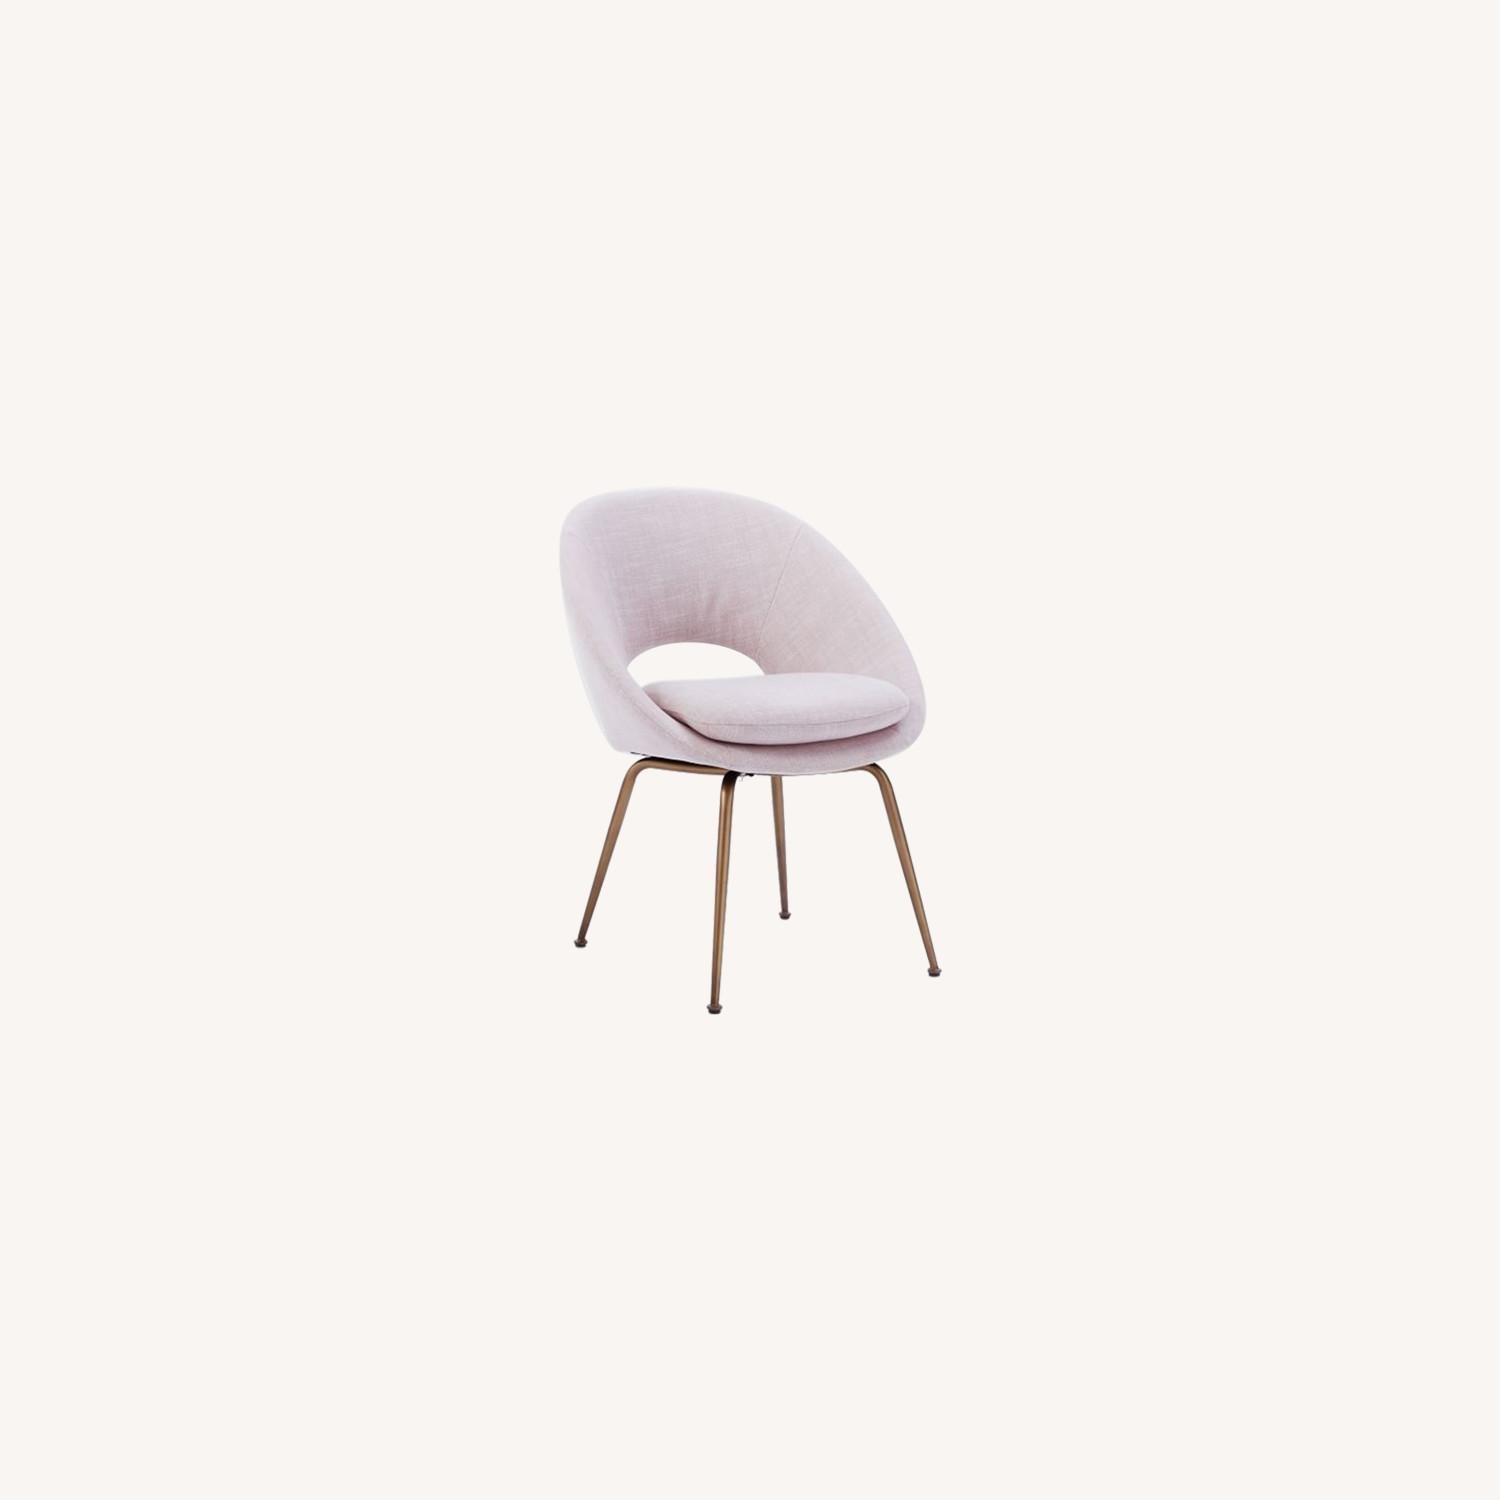 West Elm Orb Upholstered Dining Chair - image-0